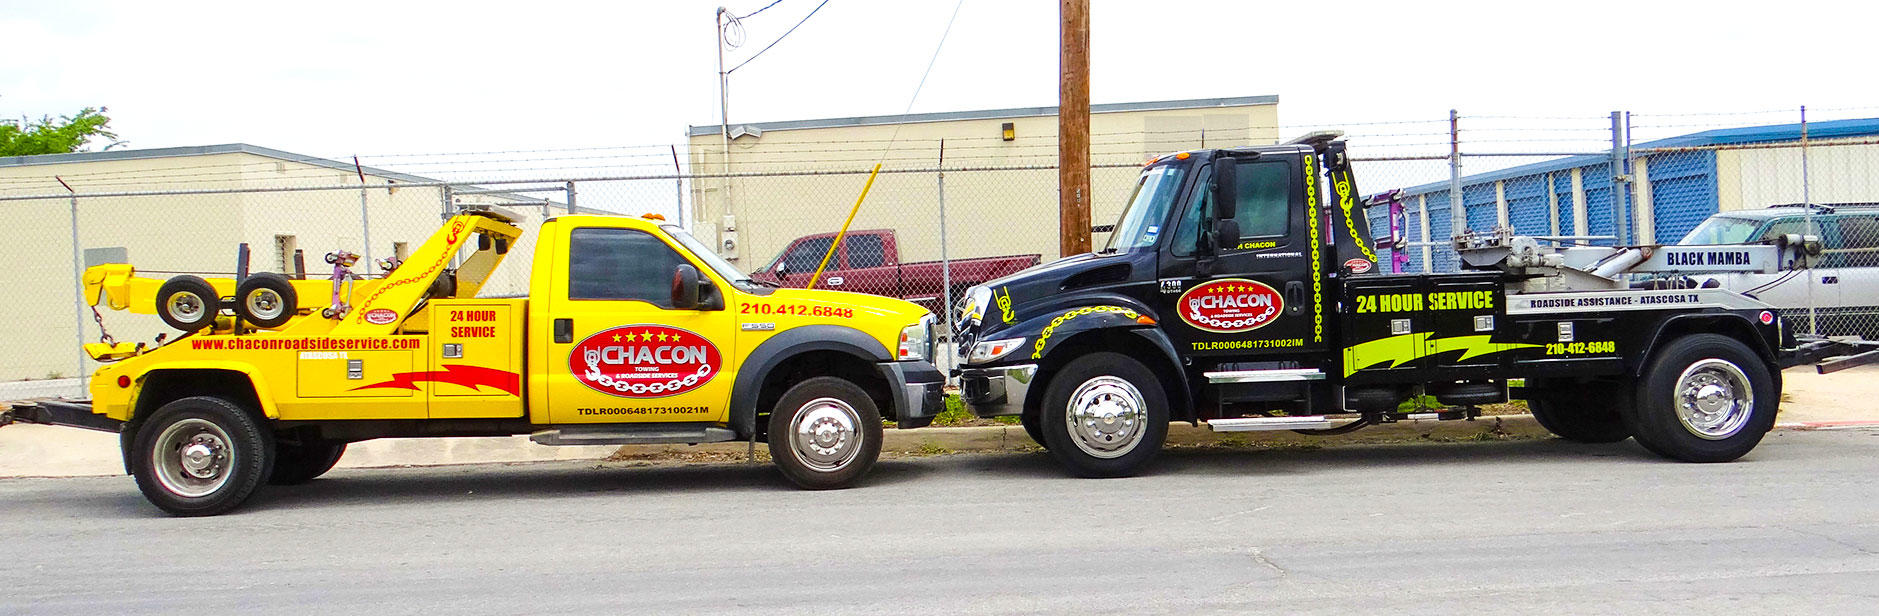 Chacon Towing & Roadside Assistance image 3